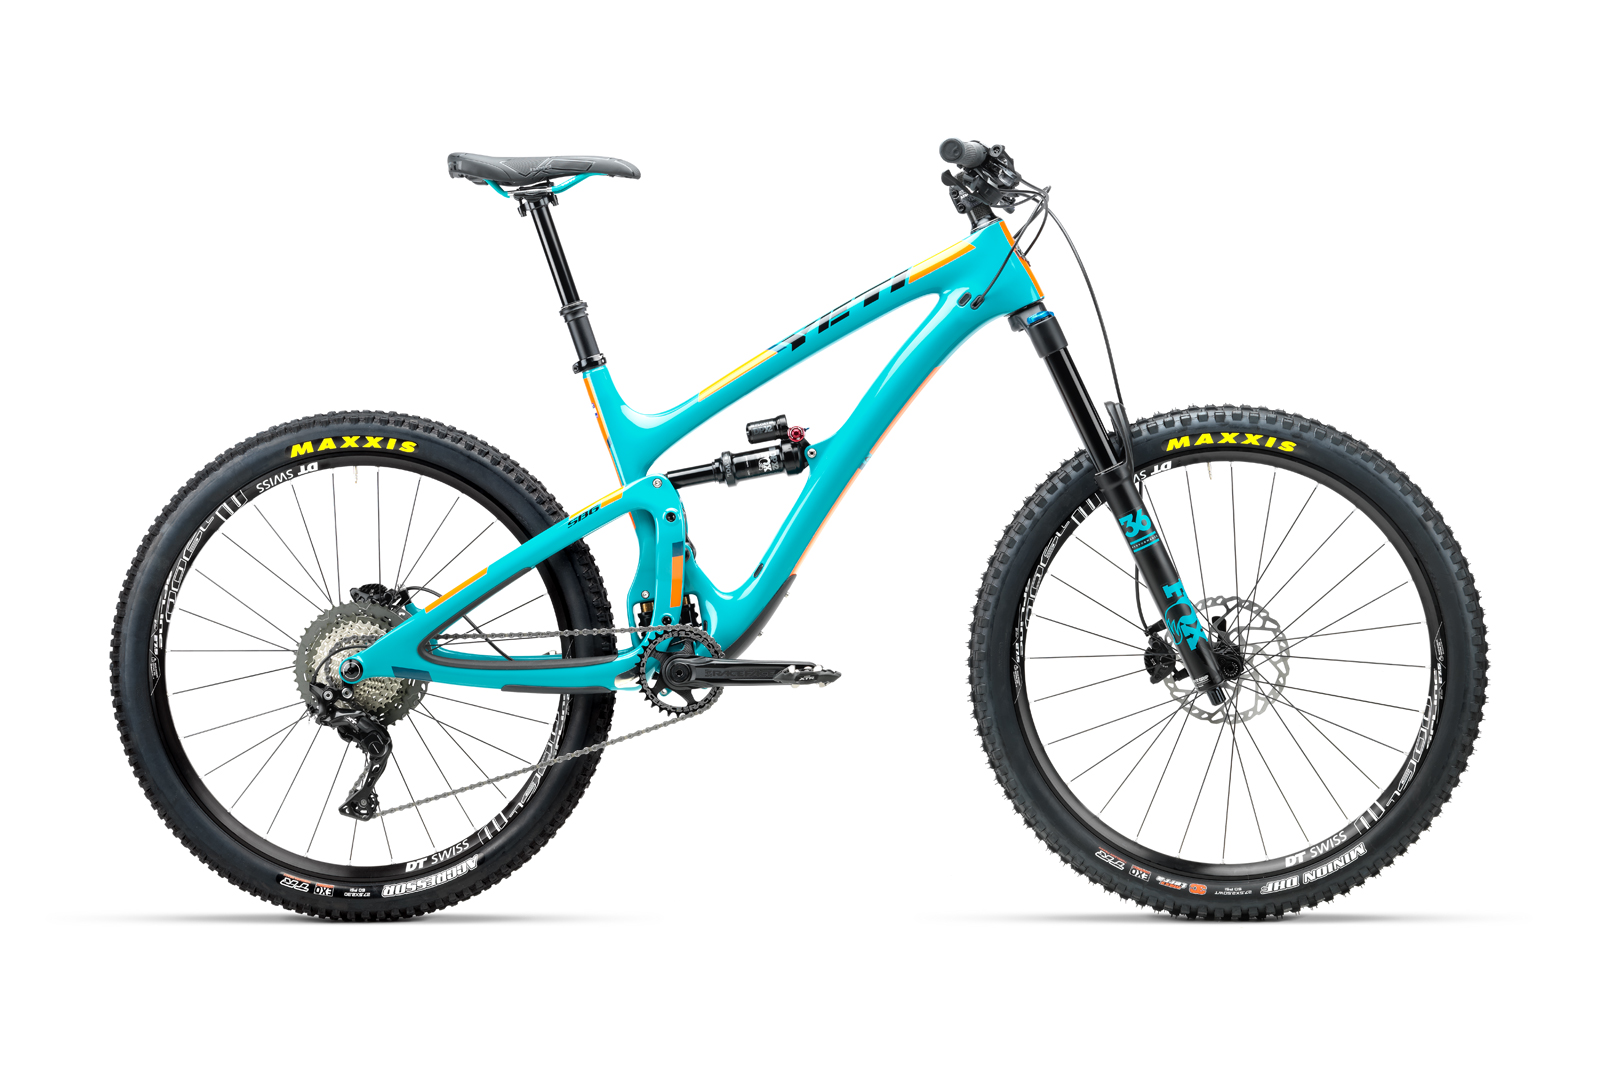 16002018_YetiCycles_SB6_CS_Turq_XT_SLX